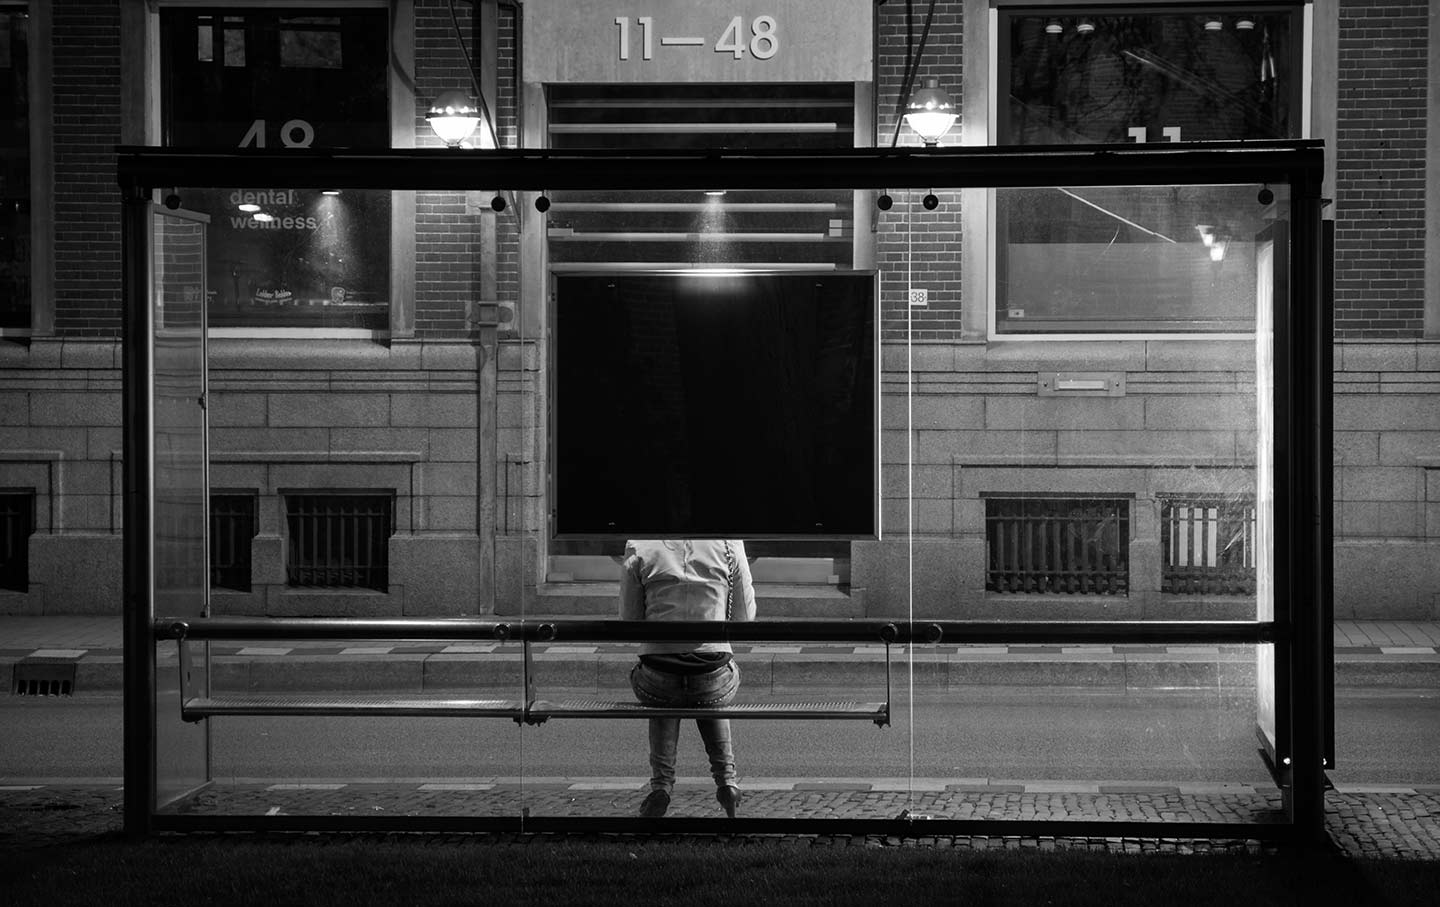 Woman at lonely bus stop.